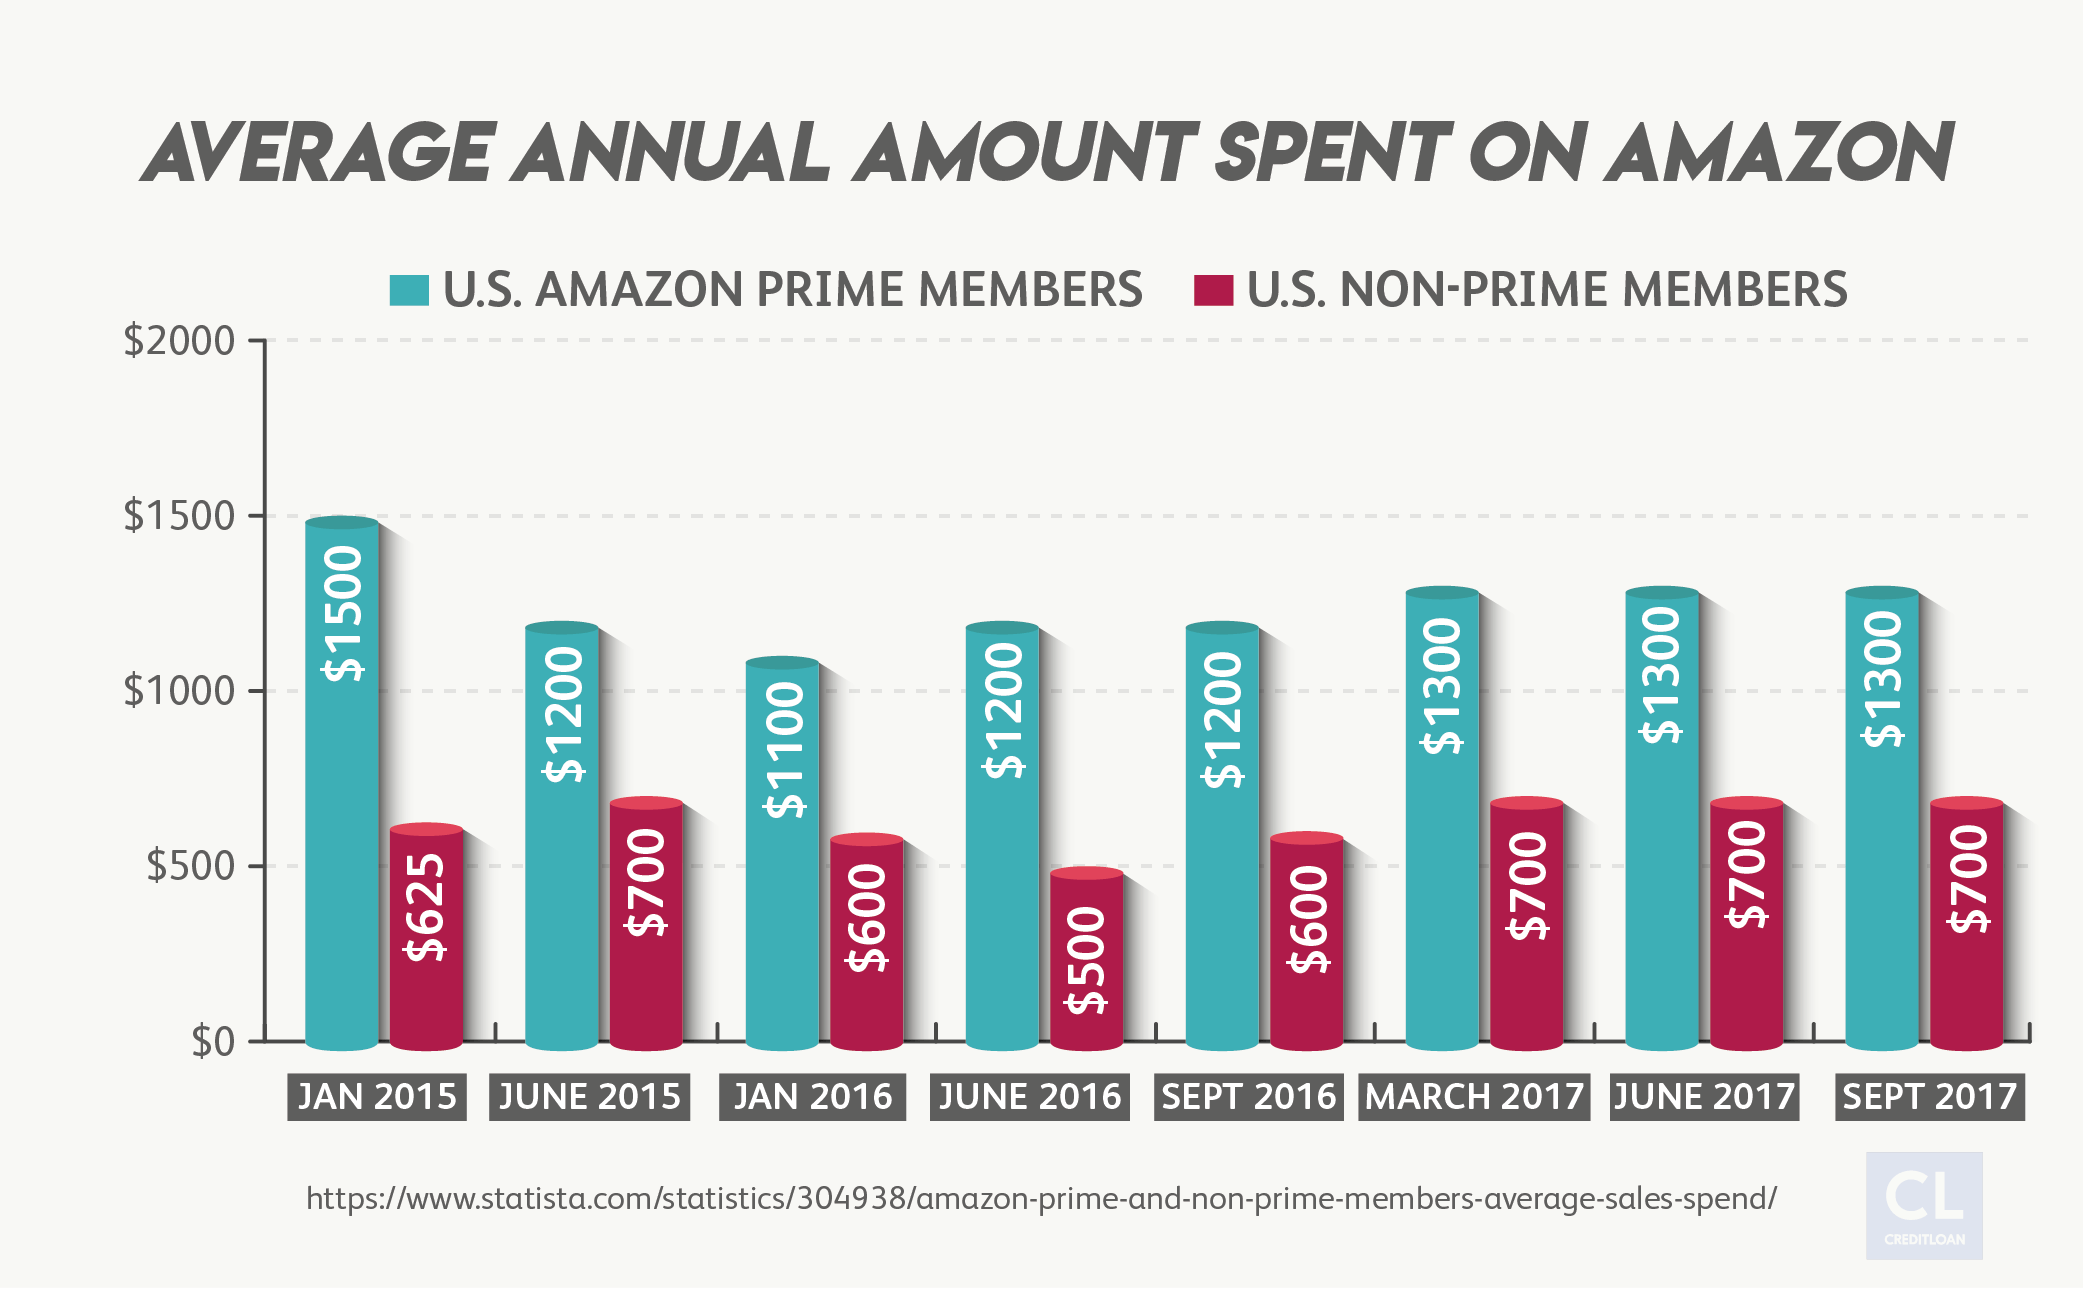 Average Annual Amount Spent on Amazon from 2015-2017